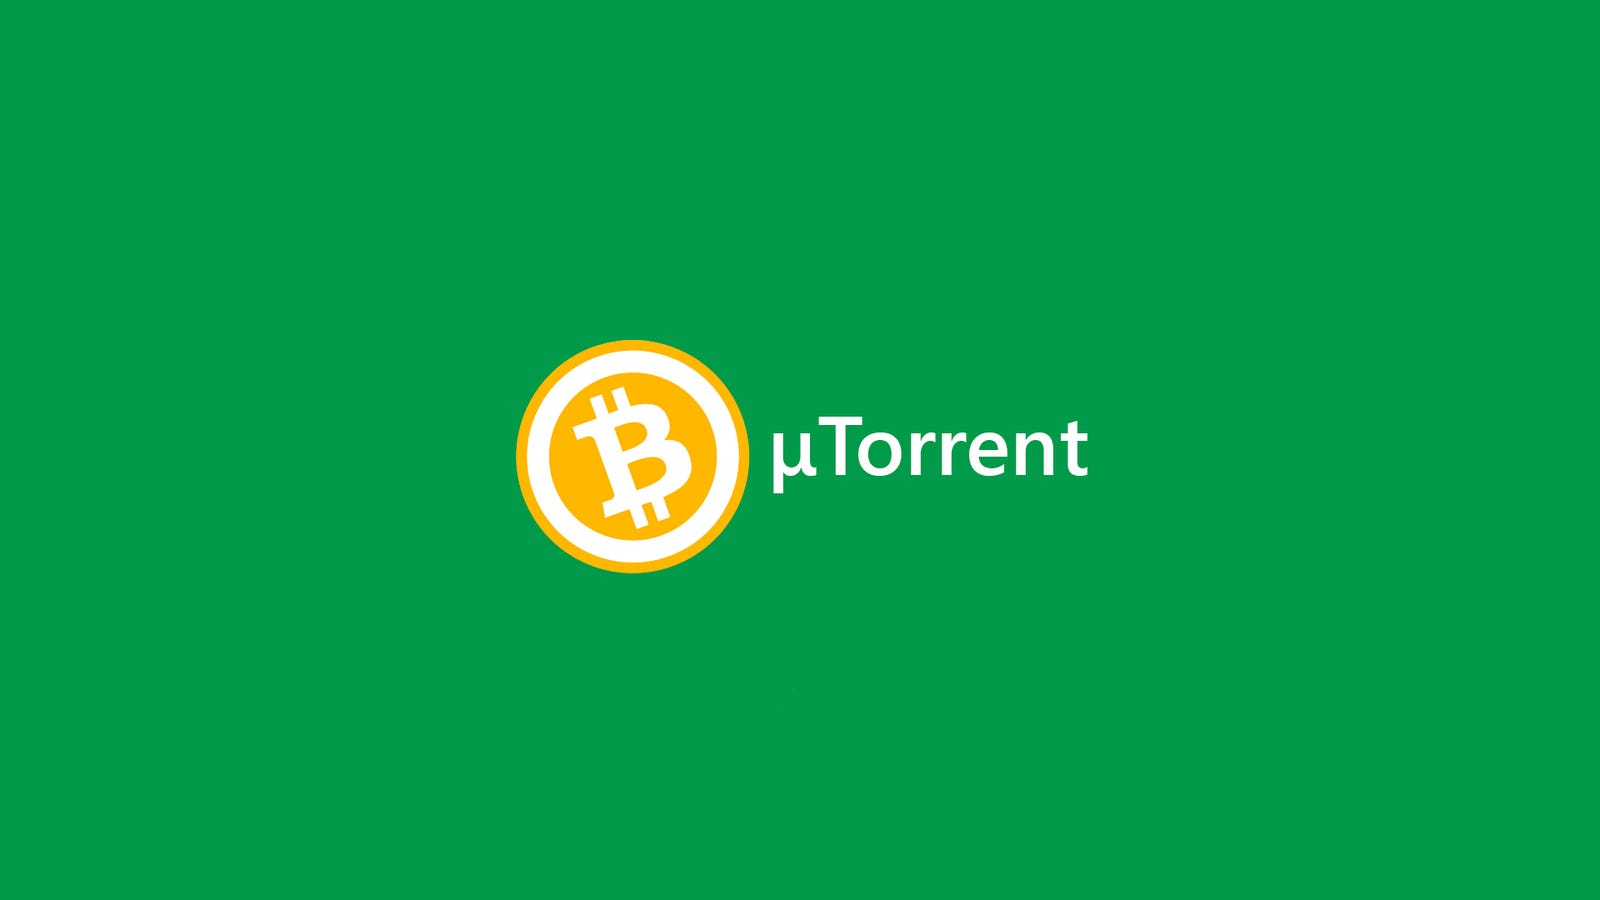 Your Torrent Client May Be Mining Bitcoin Without Telling You